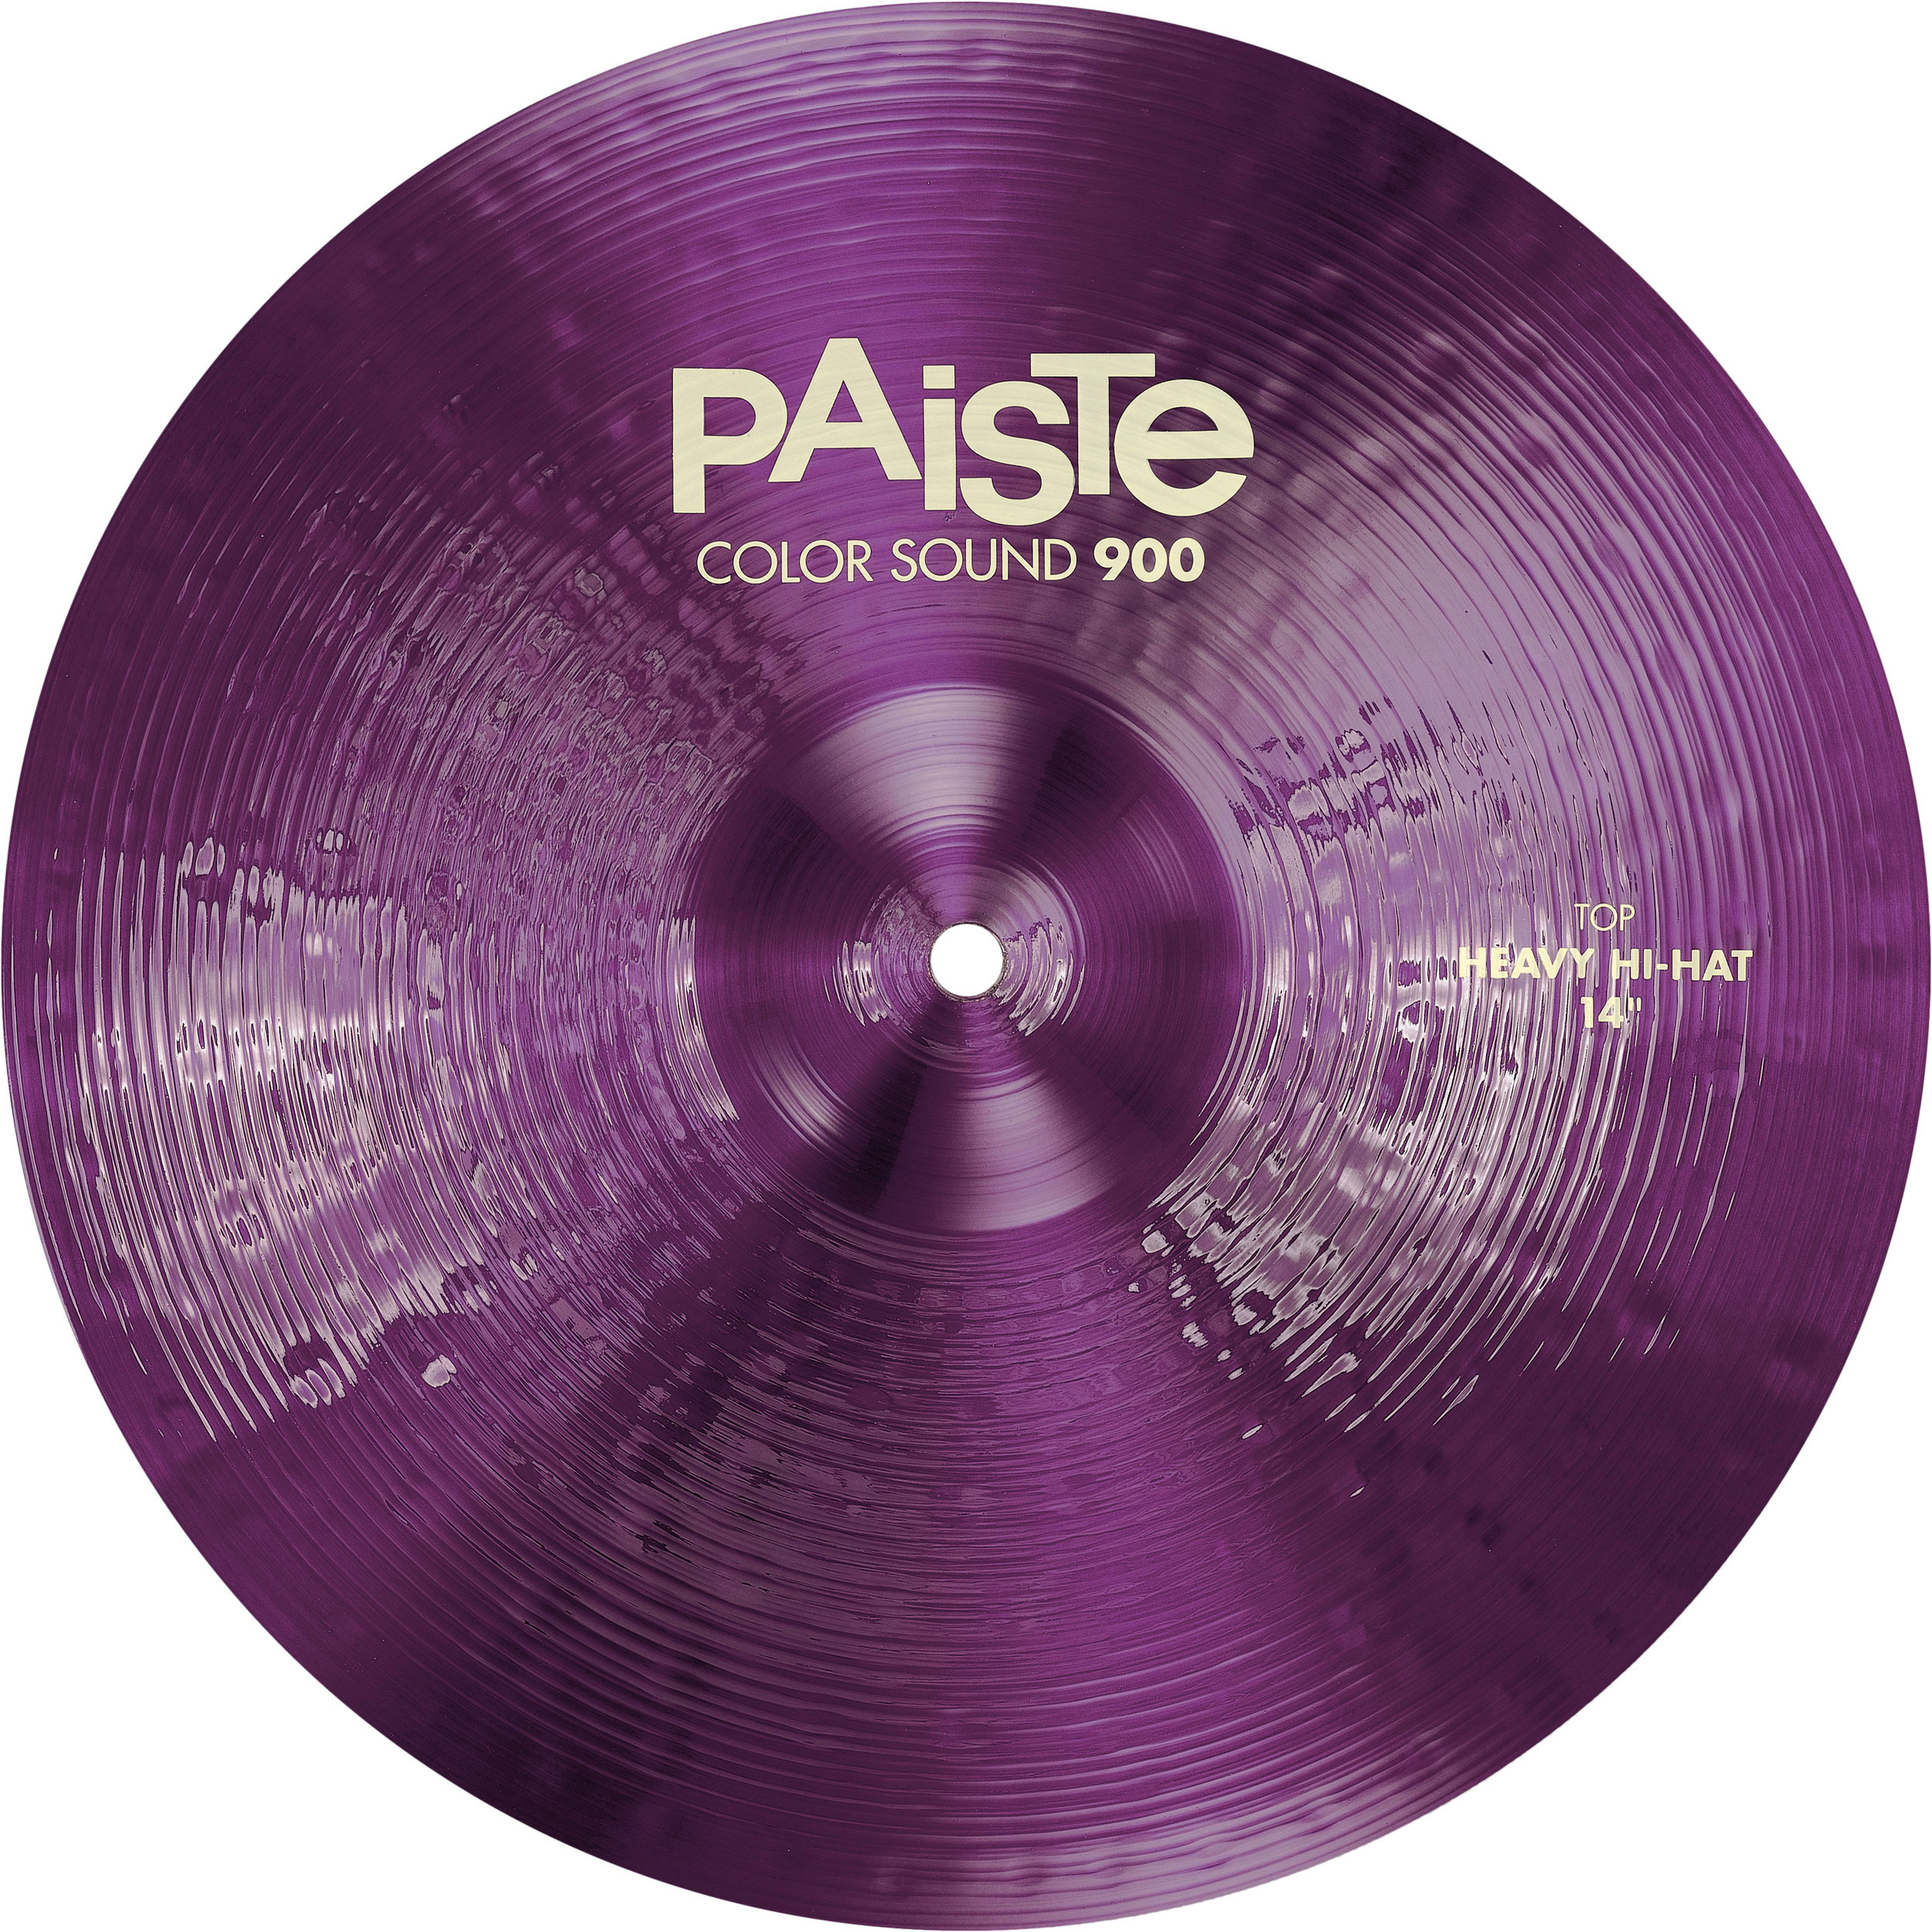 "Paiste 14"" Color Sound 900 Purple Heavy Hi Hat Cymbals"